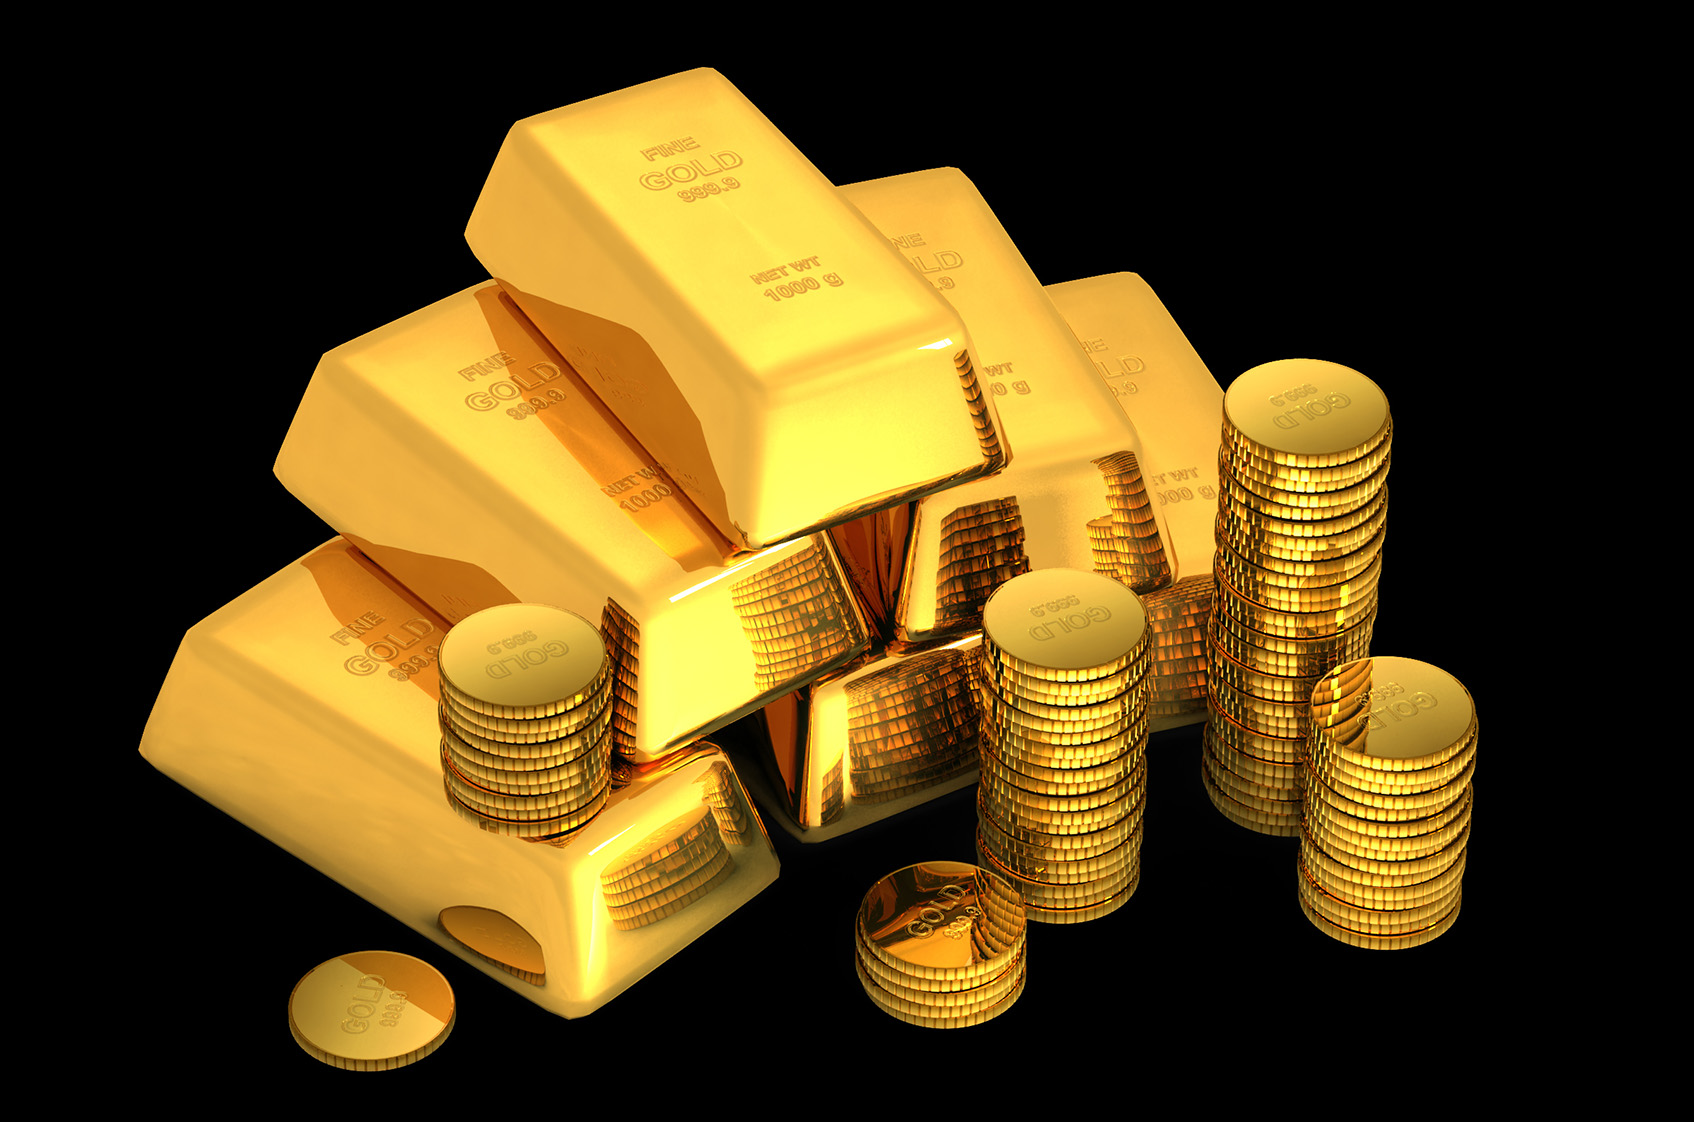 4 Gold Mining Stocks With High Free Cash Flow Yields